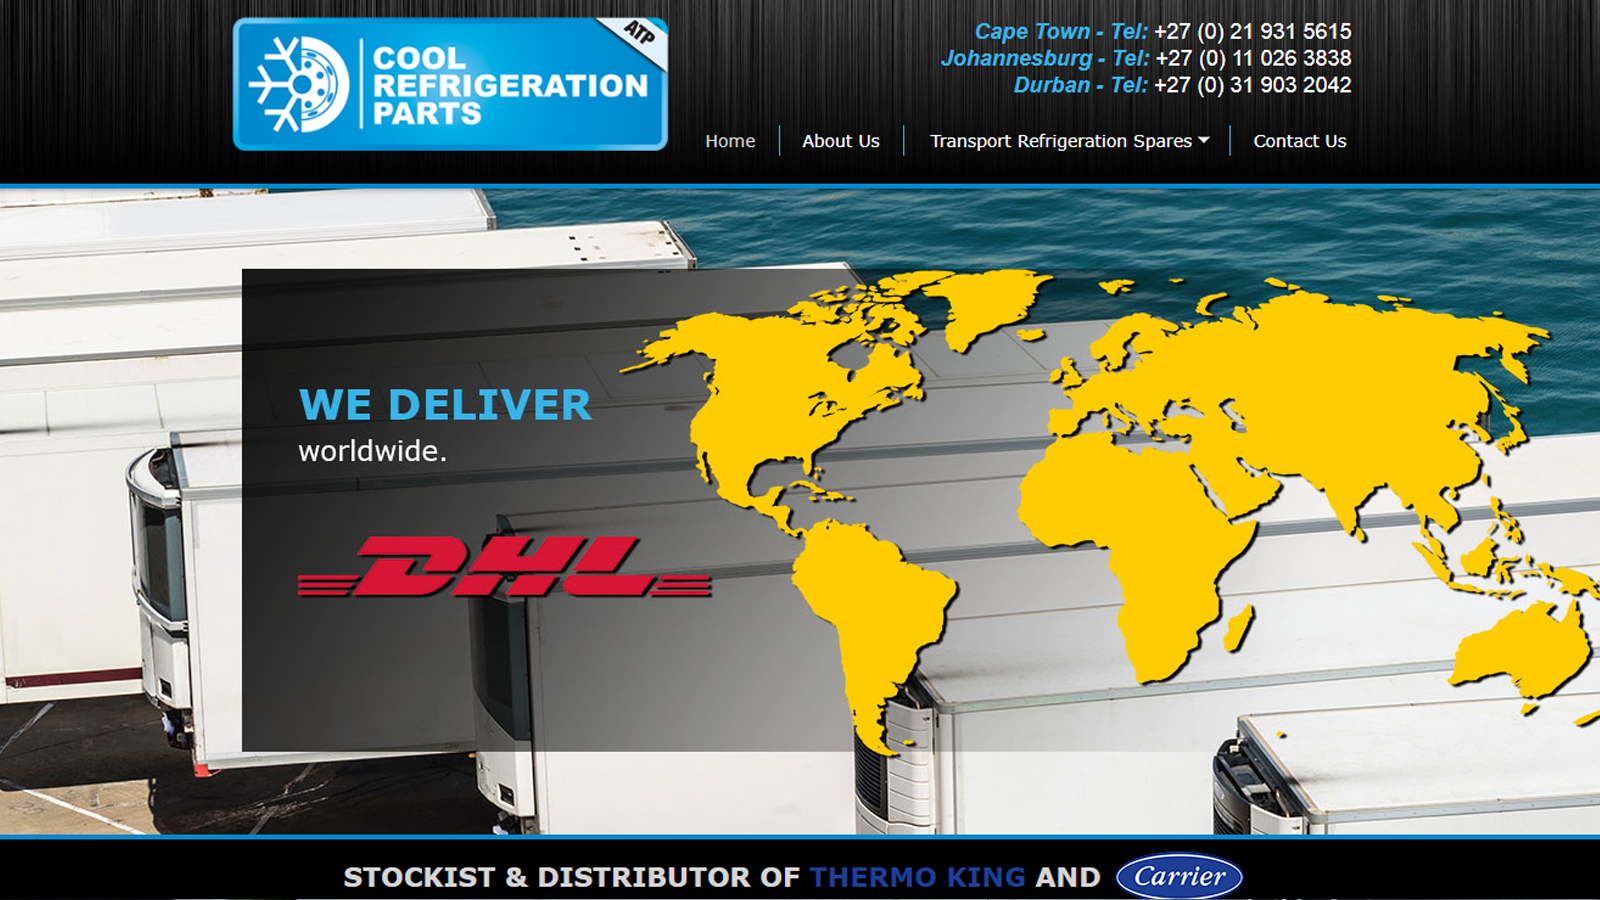 Thermo King Transport Refrigeration Spares